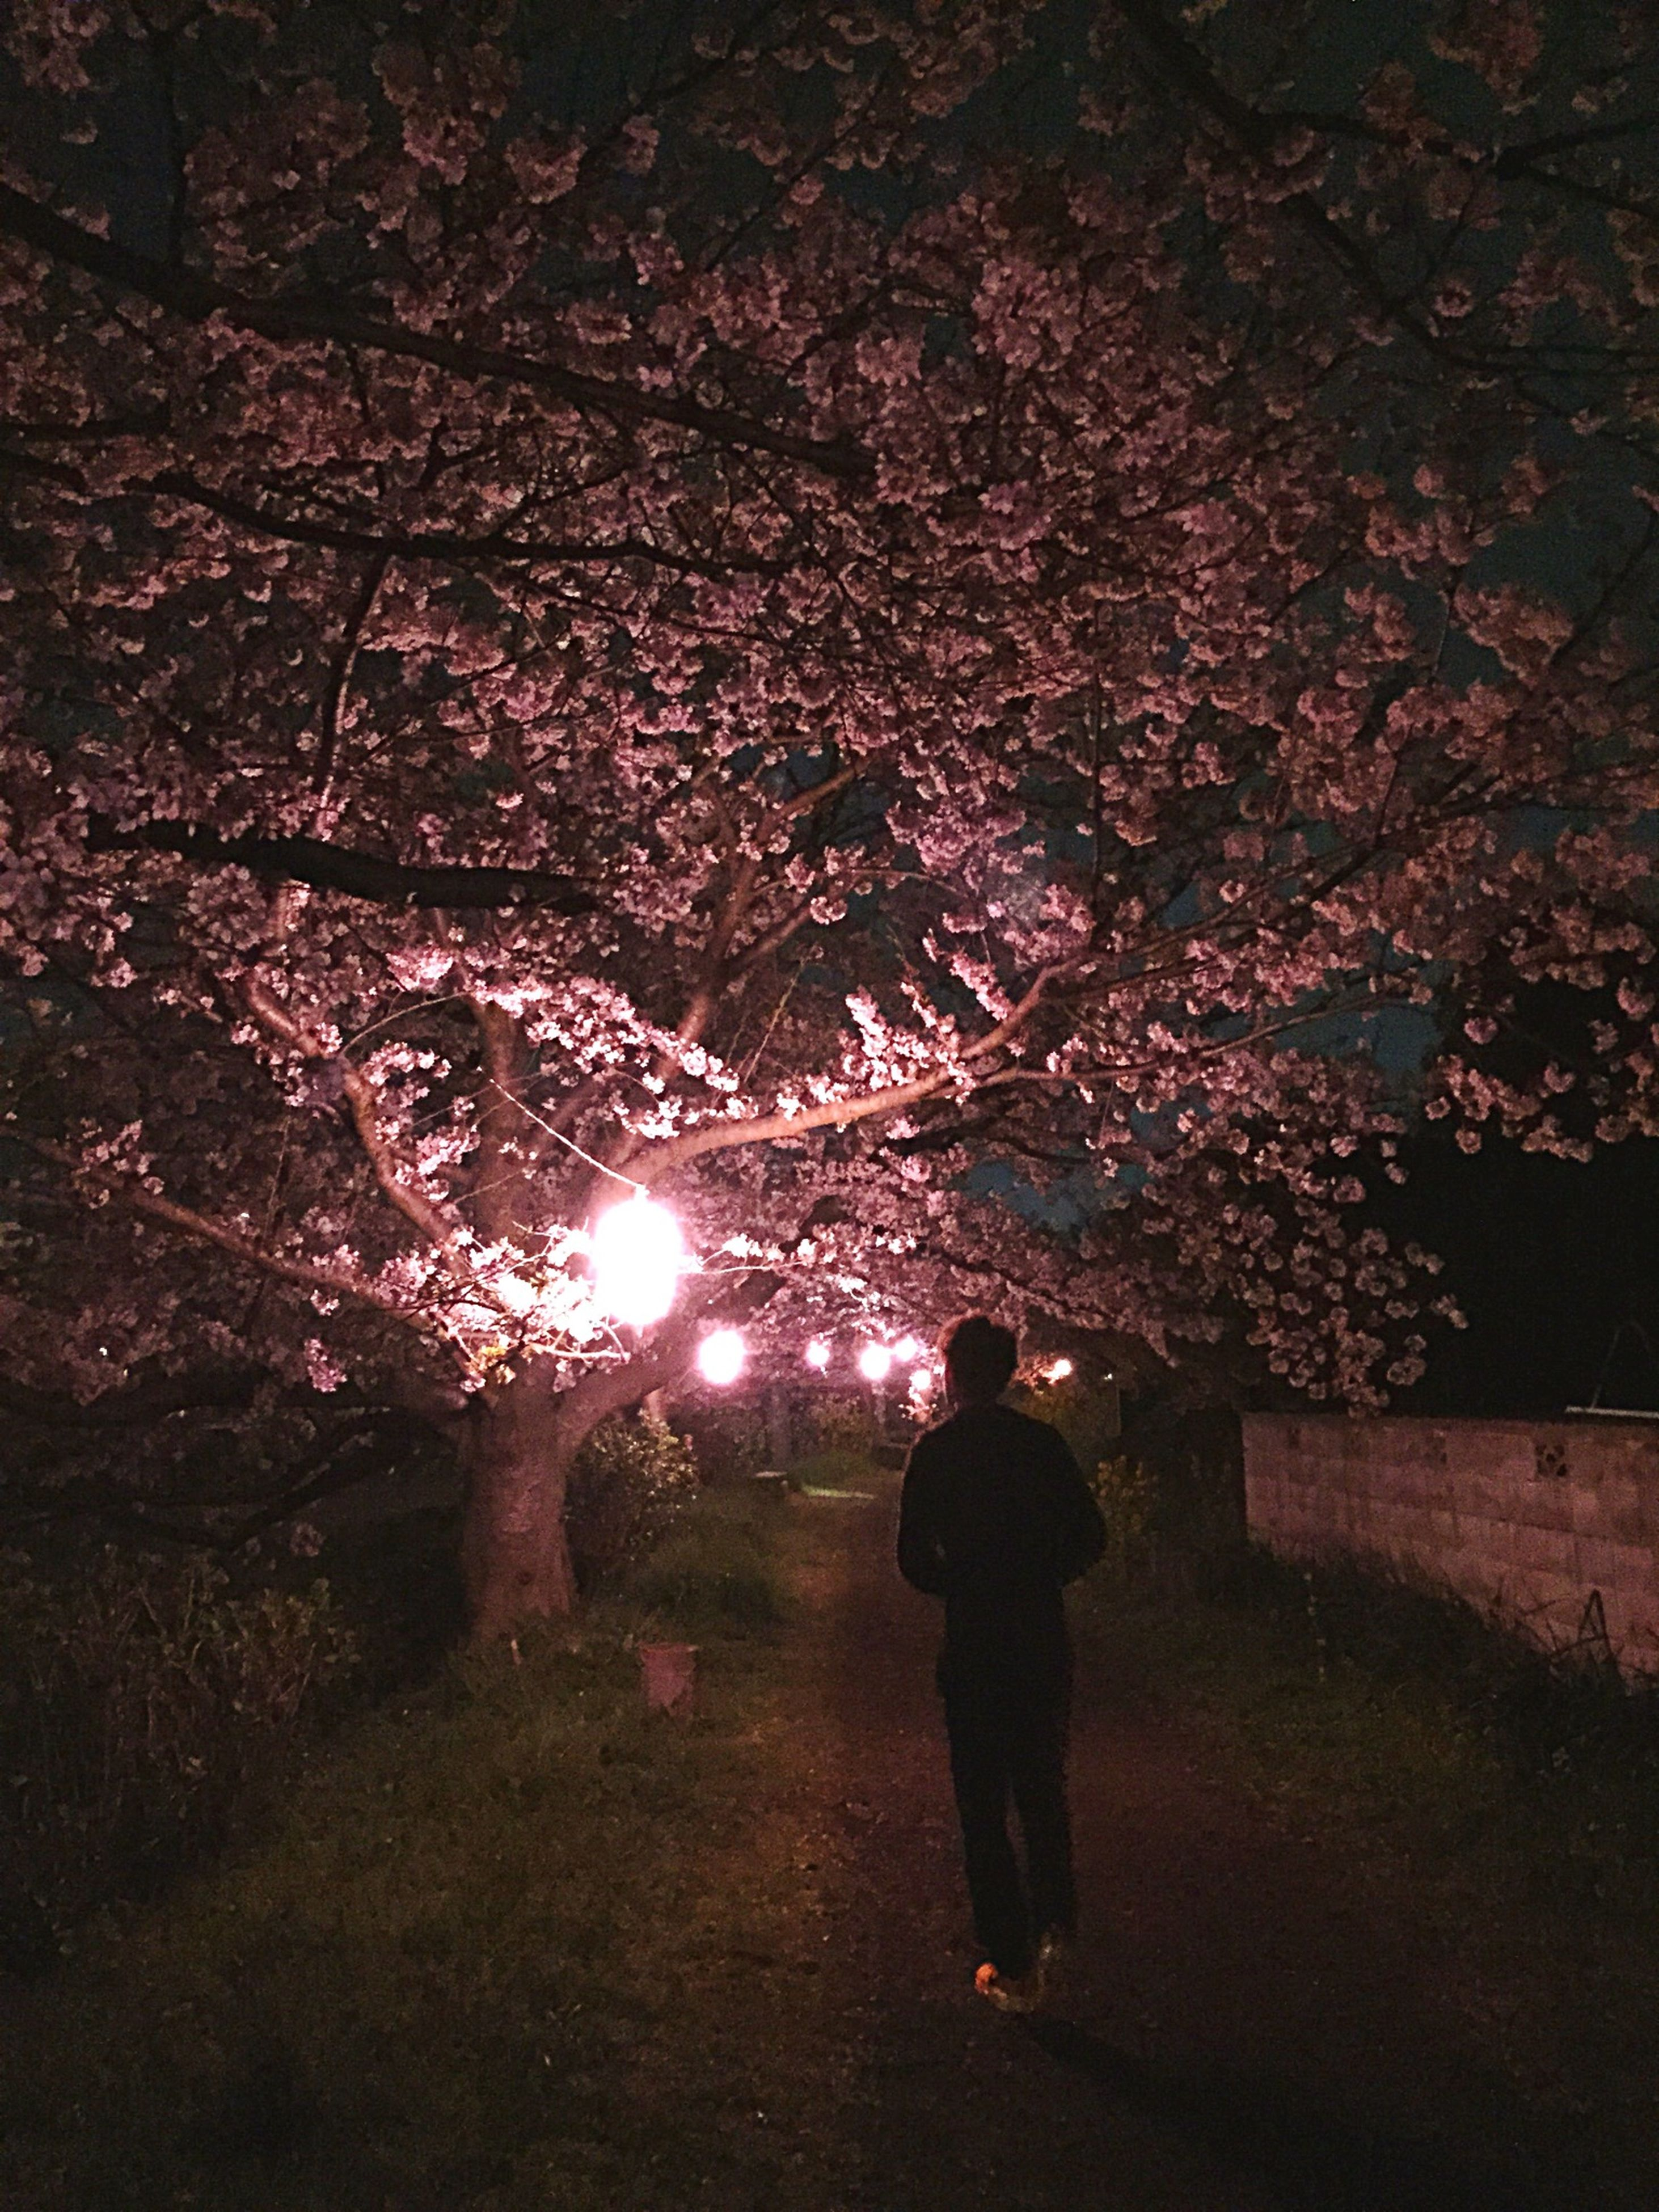 rear view, lifestyles, night, tree, walking, full length, leisure activity, men, standing, illuminated, person, silhouette, outdoors, nature, street, the way forward, sunlight, footpath